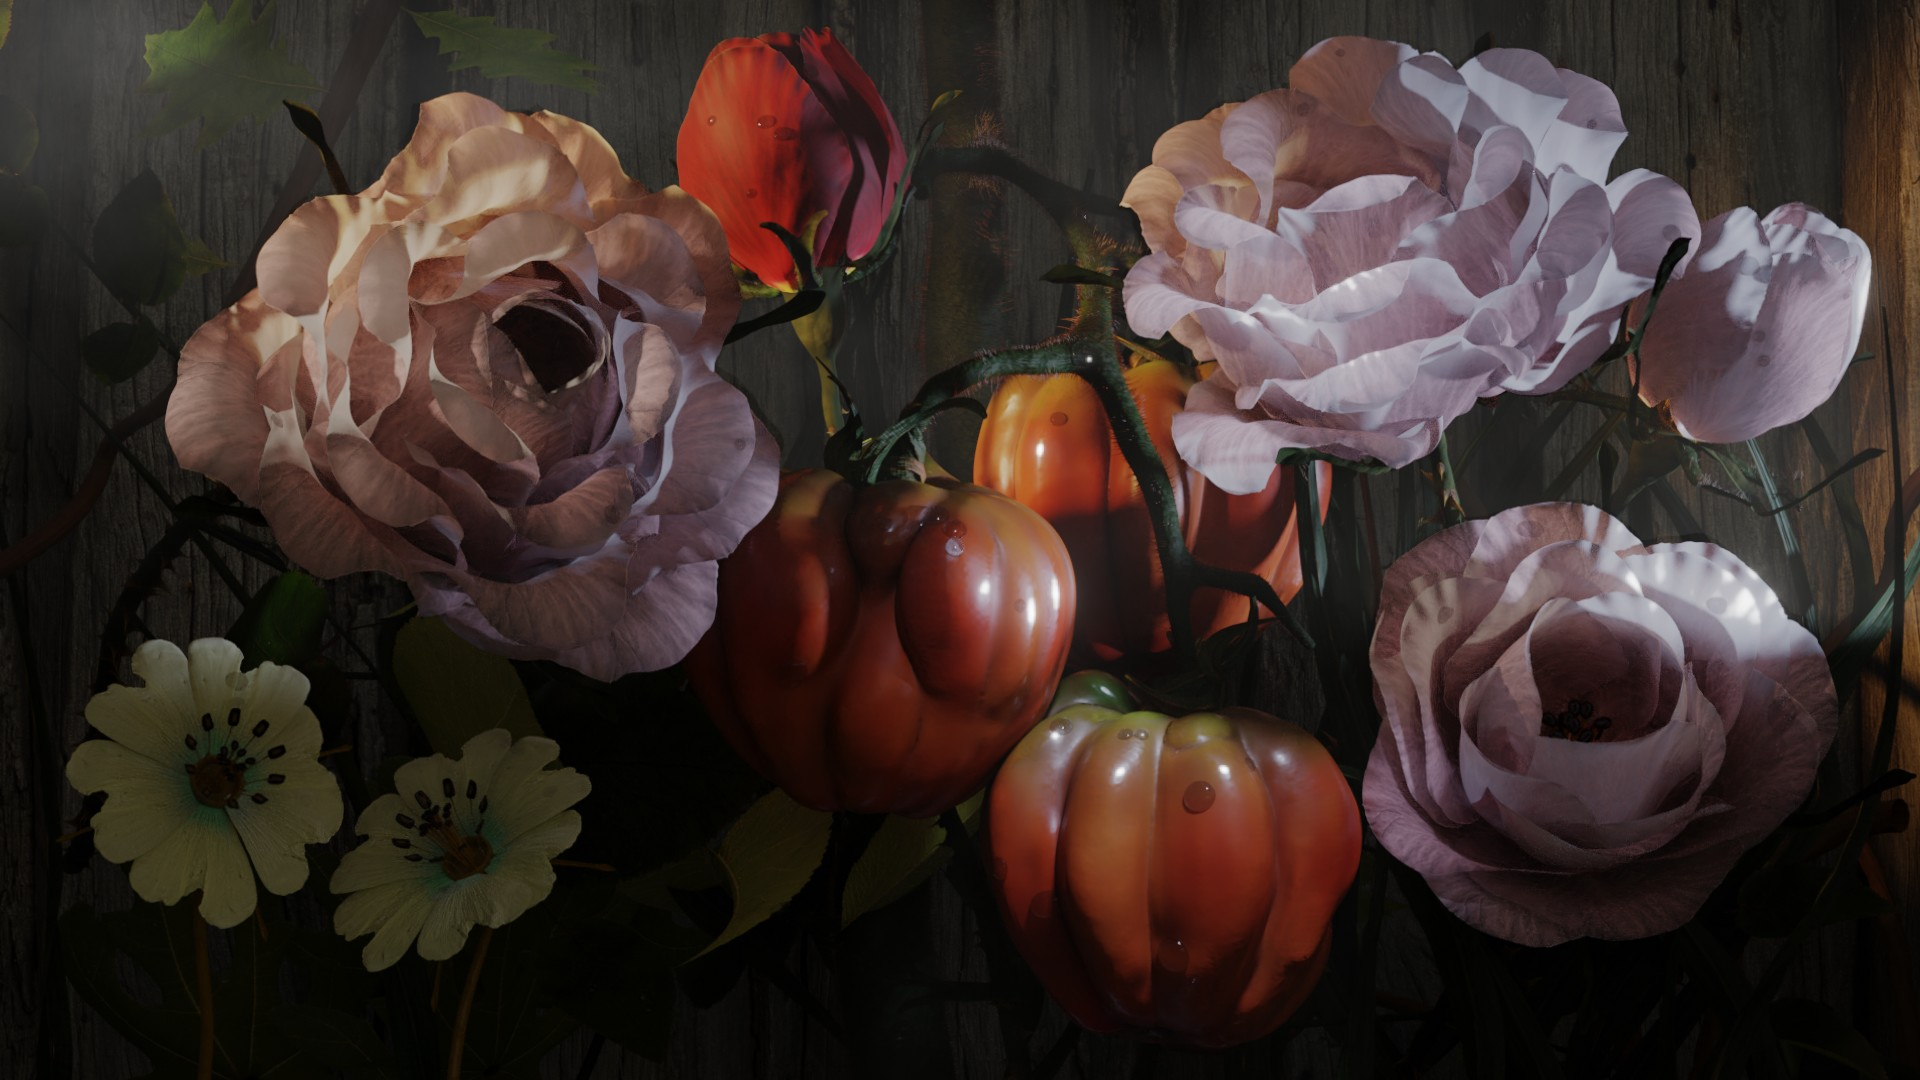 roses-and-tomatoes